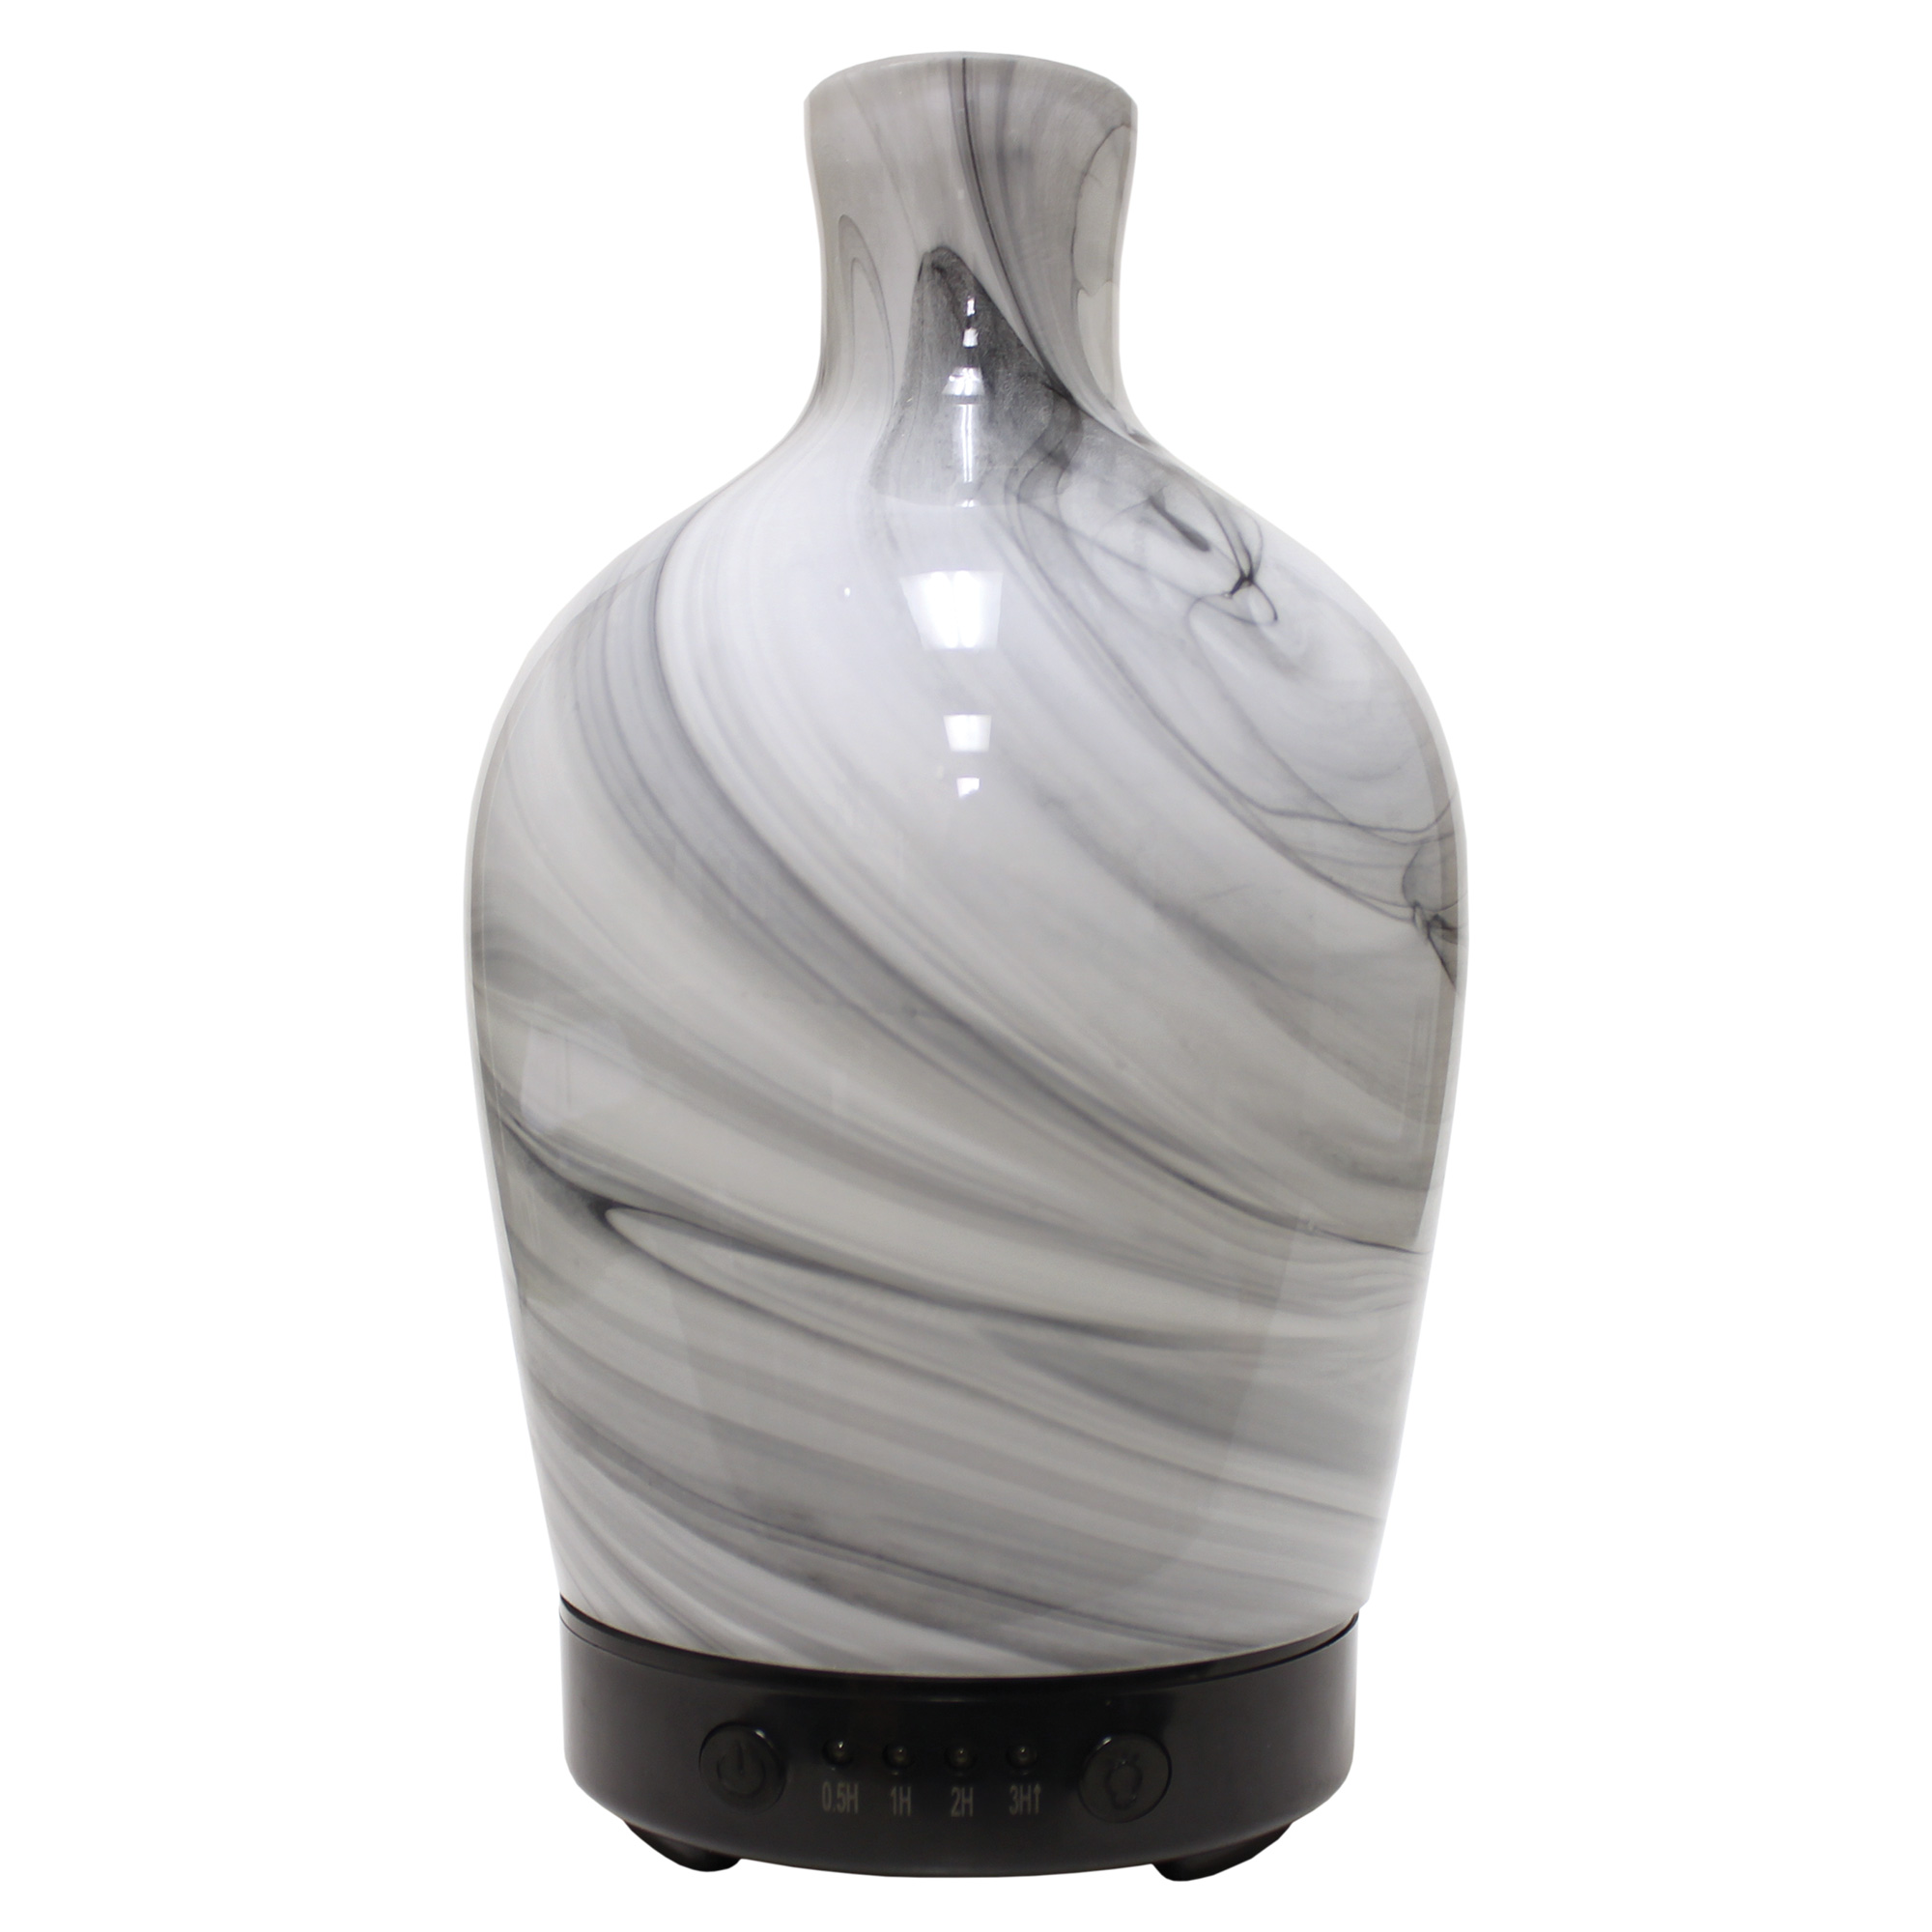 MARBLE VASE ARTESIAN GLASS ULTRASONIC OIL DIFFUSERUPC# 674623018362